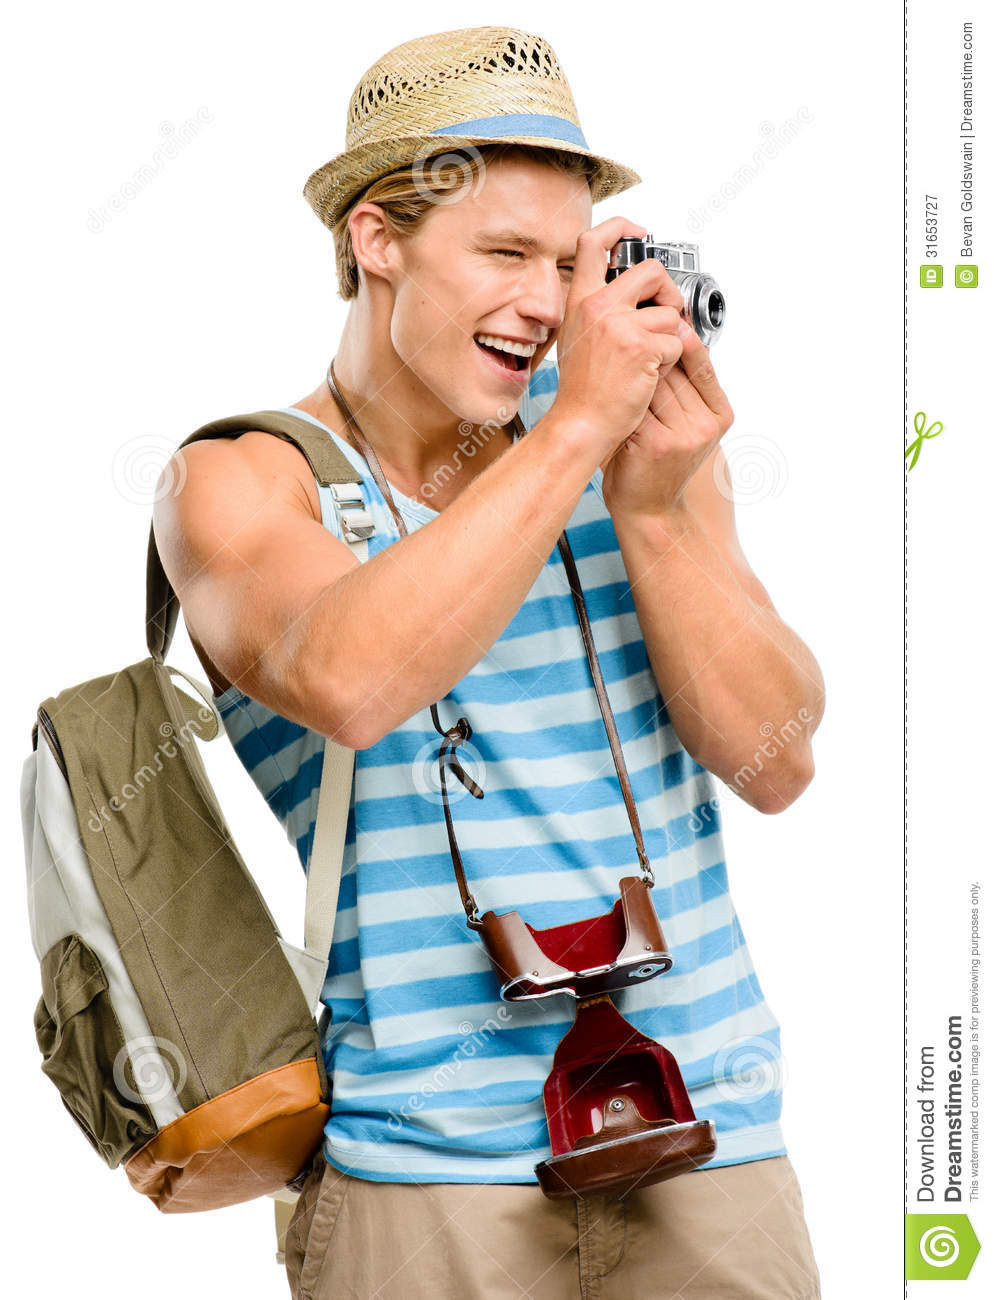 happy-tourist-man-photographing-vintage-